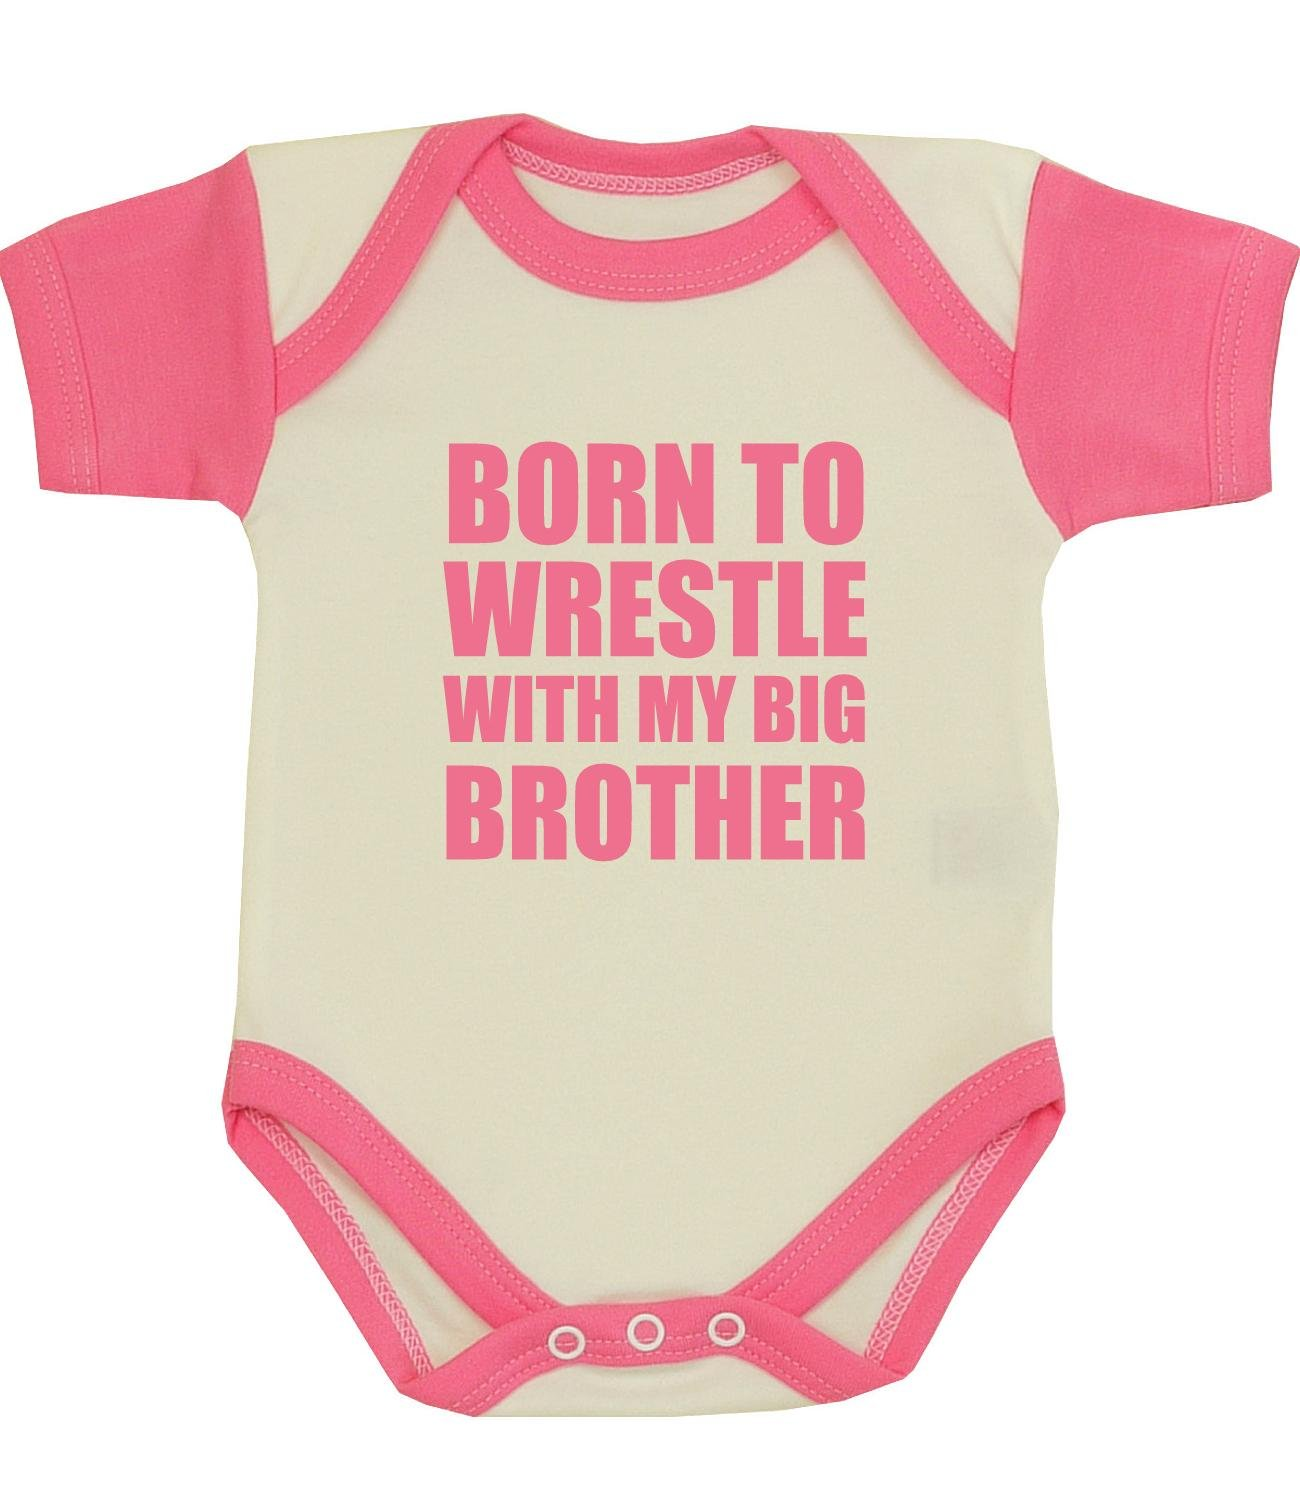 BabyPrem Baby Born to Wrestle with my Big Brother Clothes Bodysuit PINK 0-3